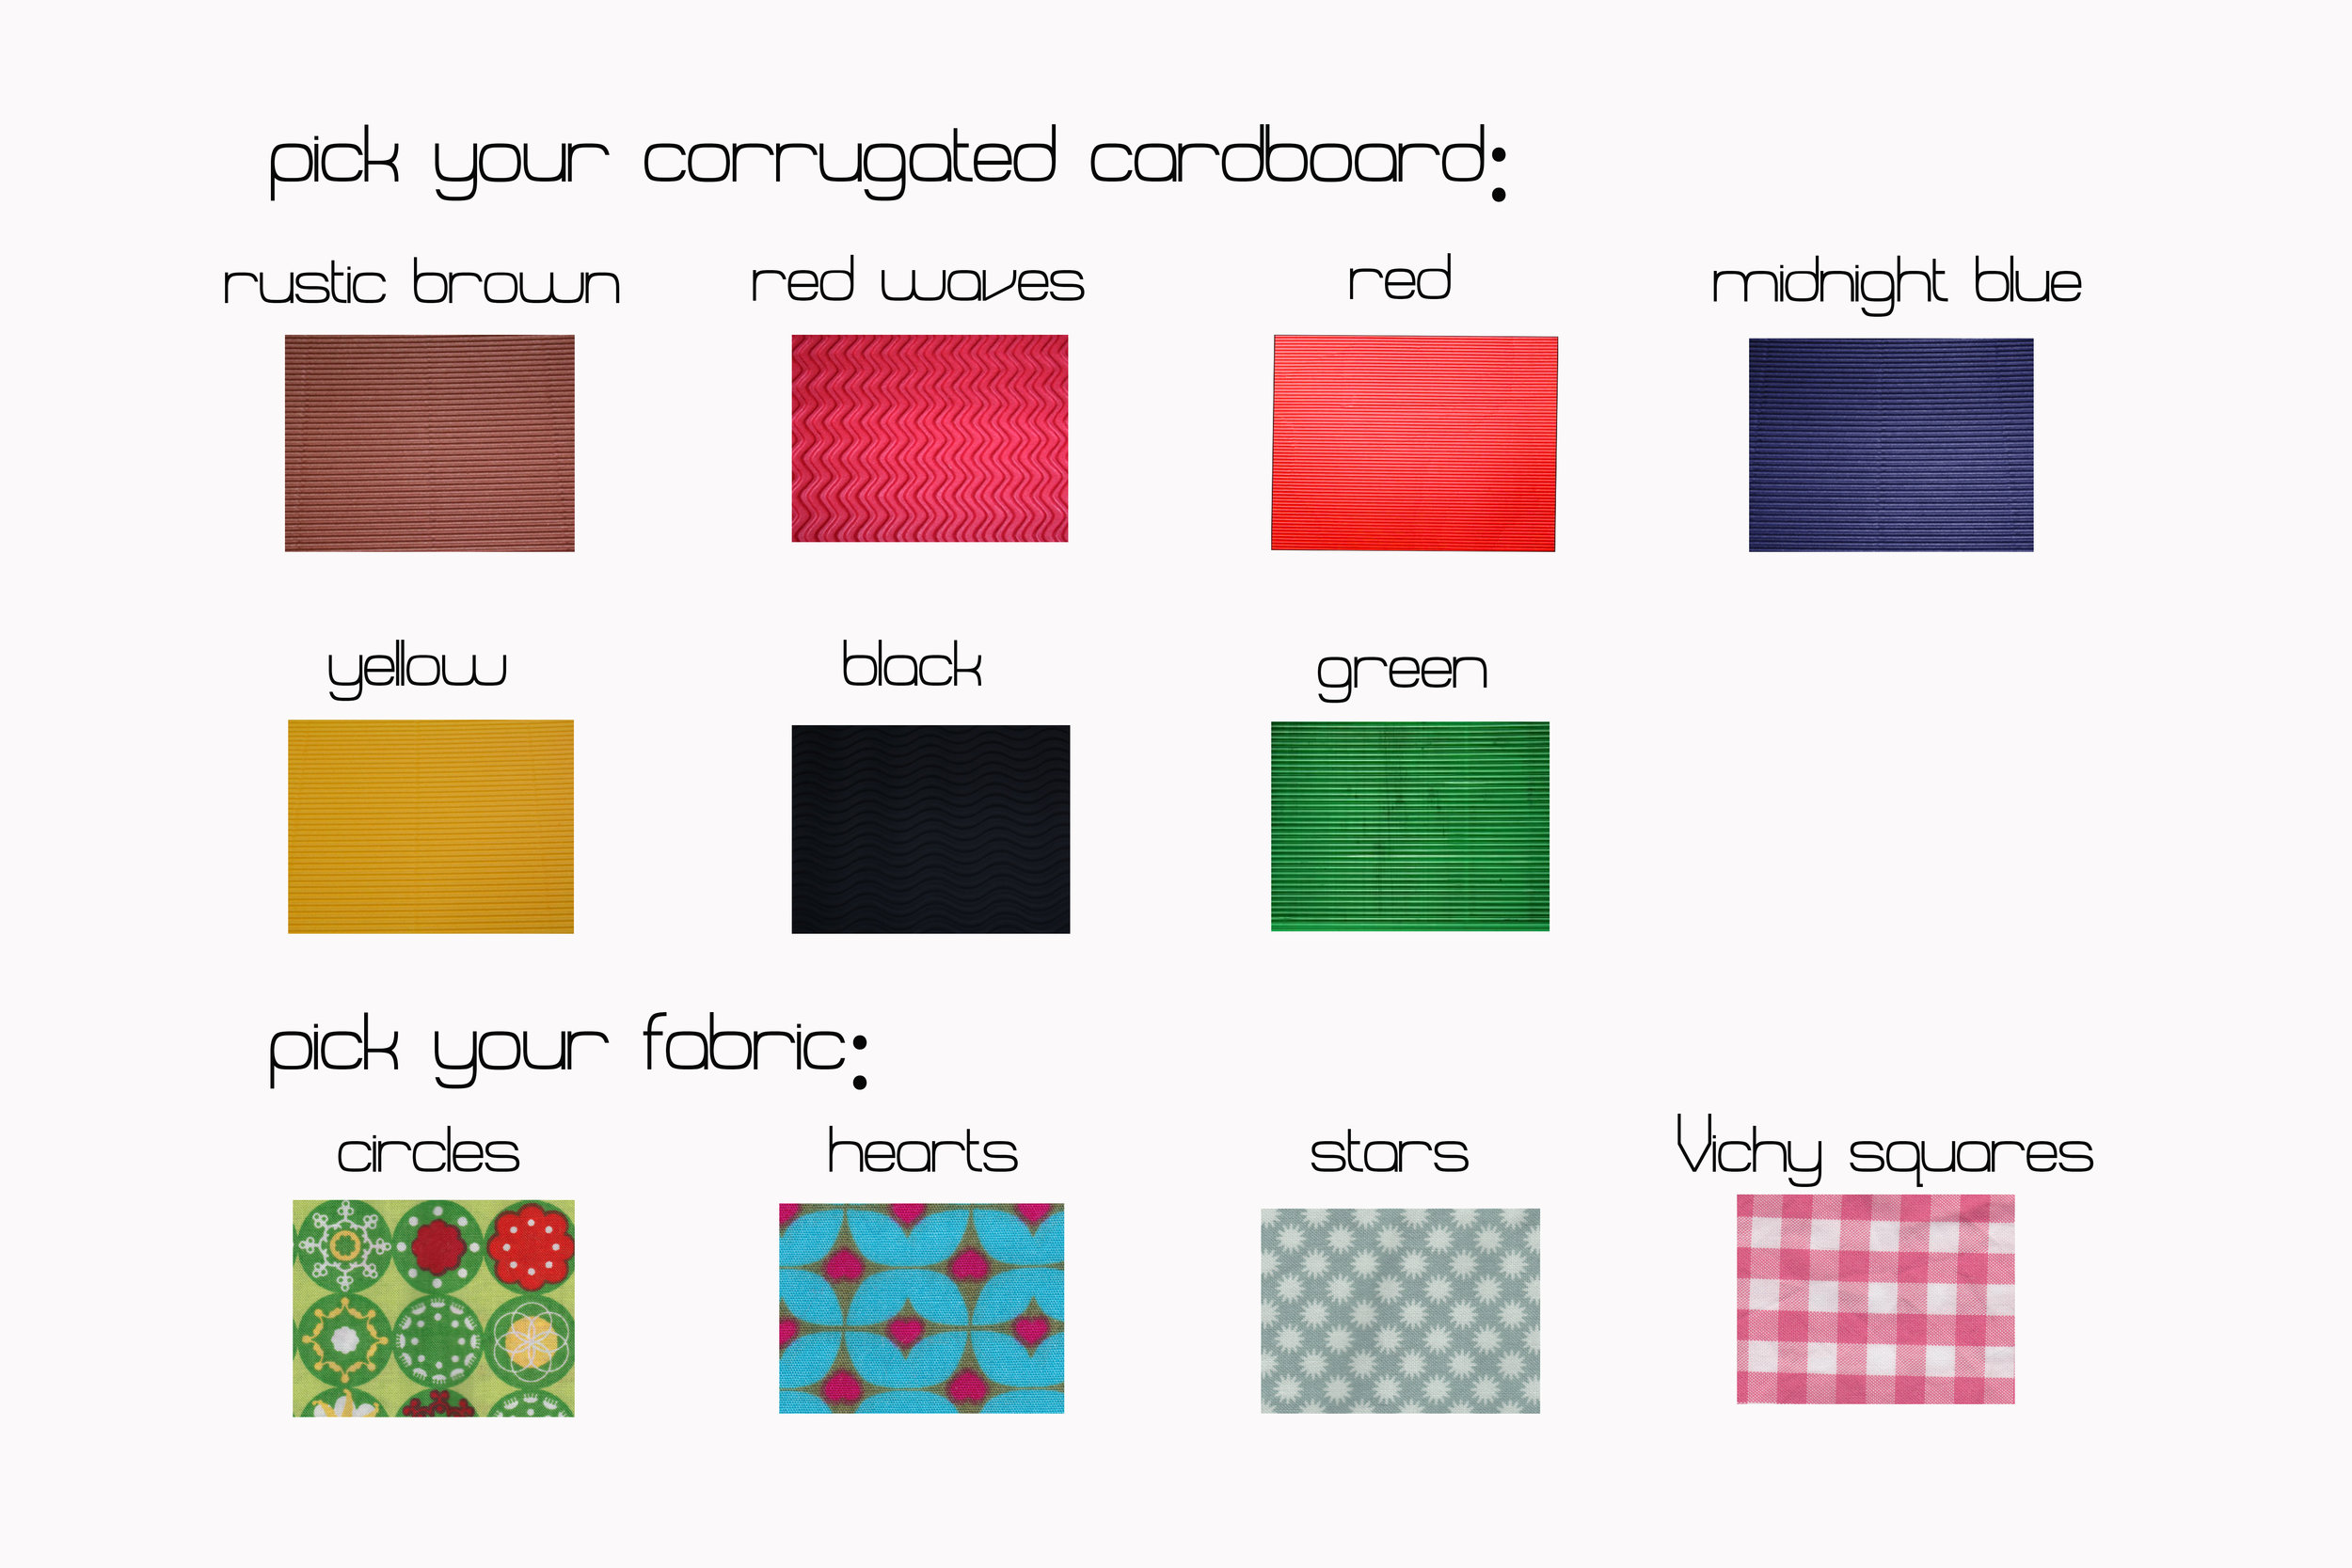 xmas custom journal options.jpg